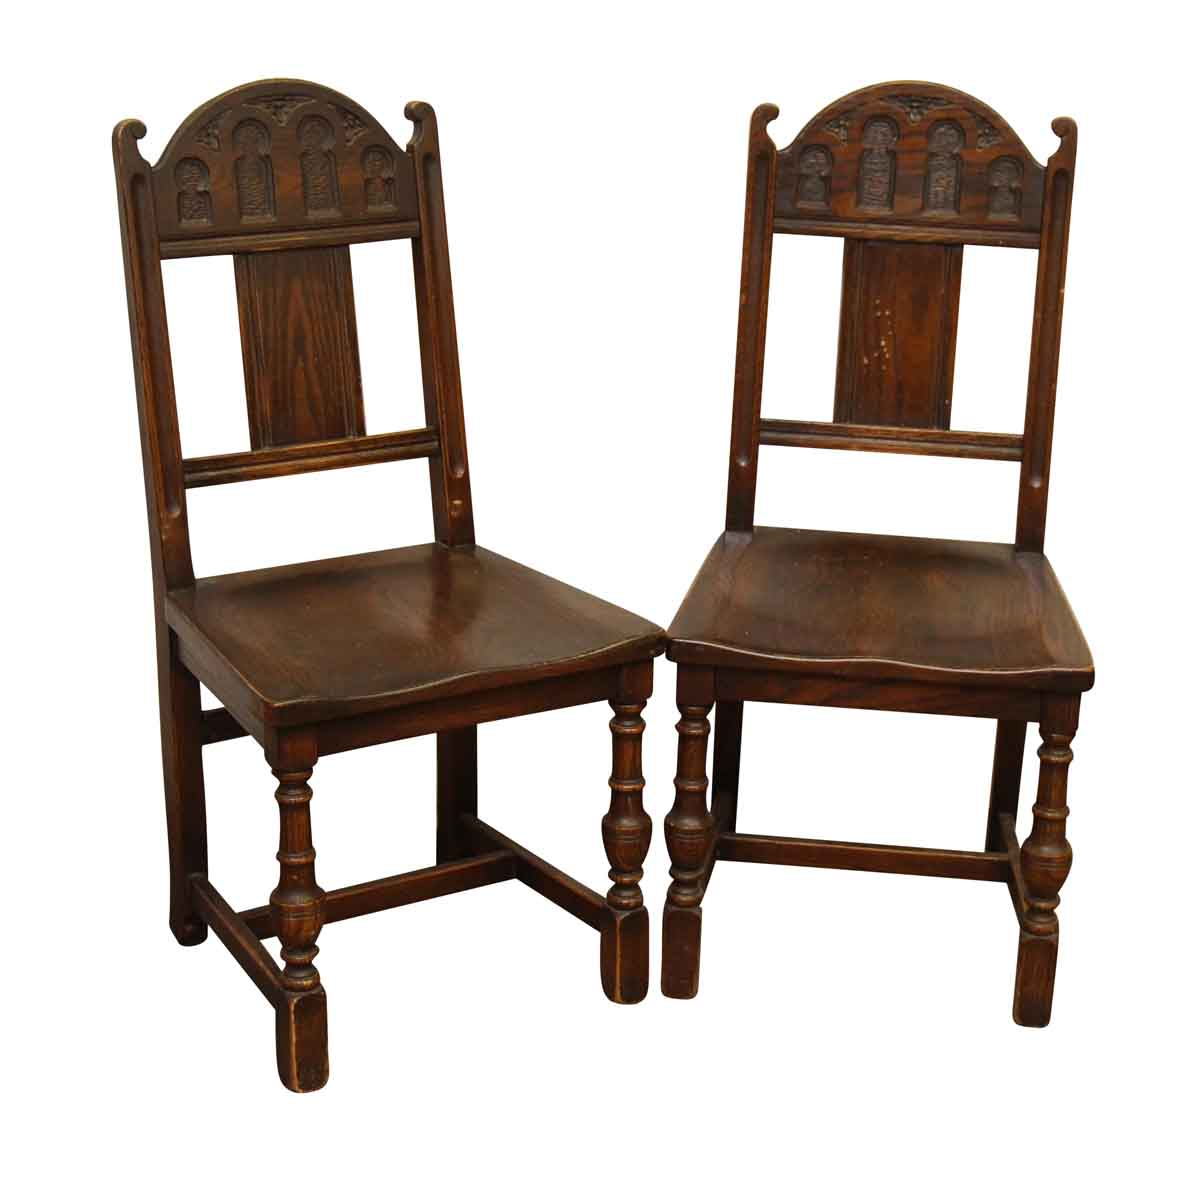 Pair of gothic wooden chairs olde good things Old wooden furniture